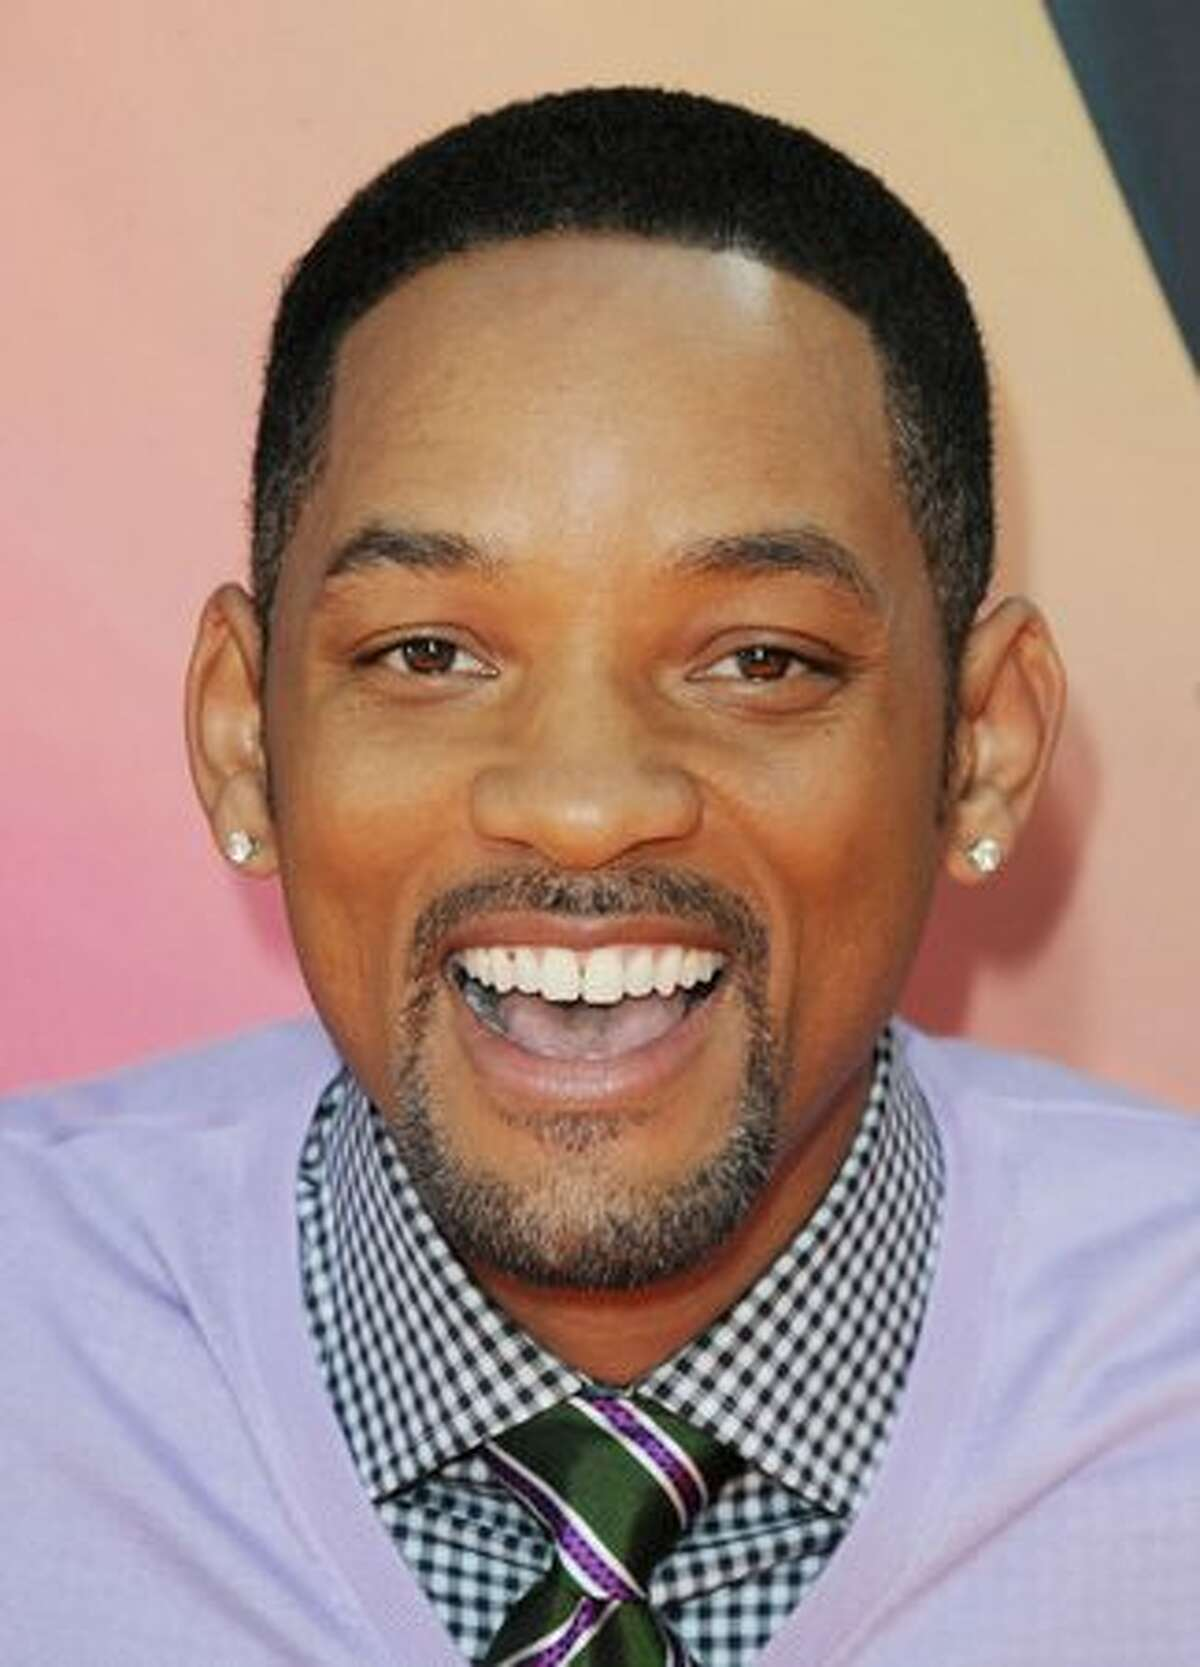 Actor Will Smith arrives at Nickelodeon's 23rd Annual Kids' Choice Awards held at UCLA's Pauley Pavilion in Los Angeles on March 27, 2010.